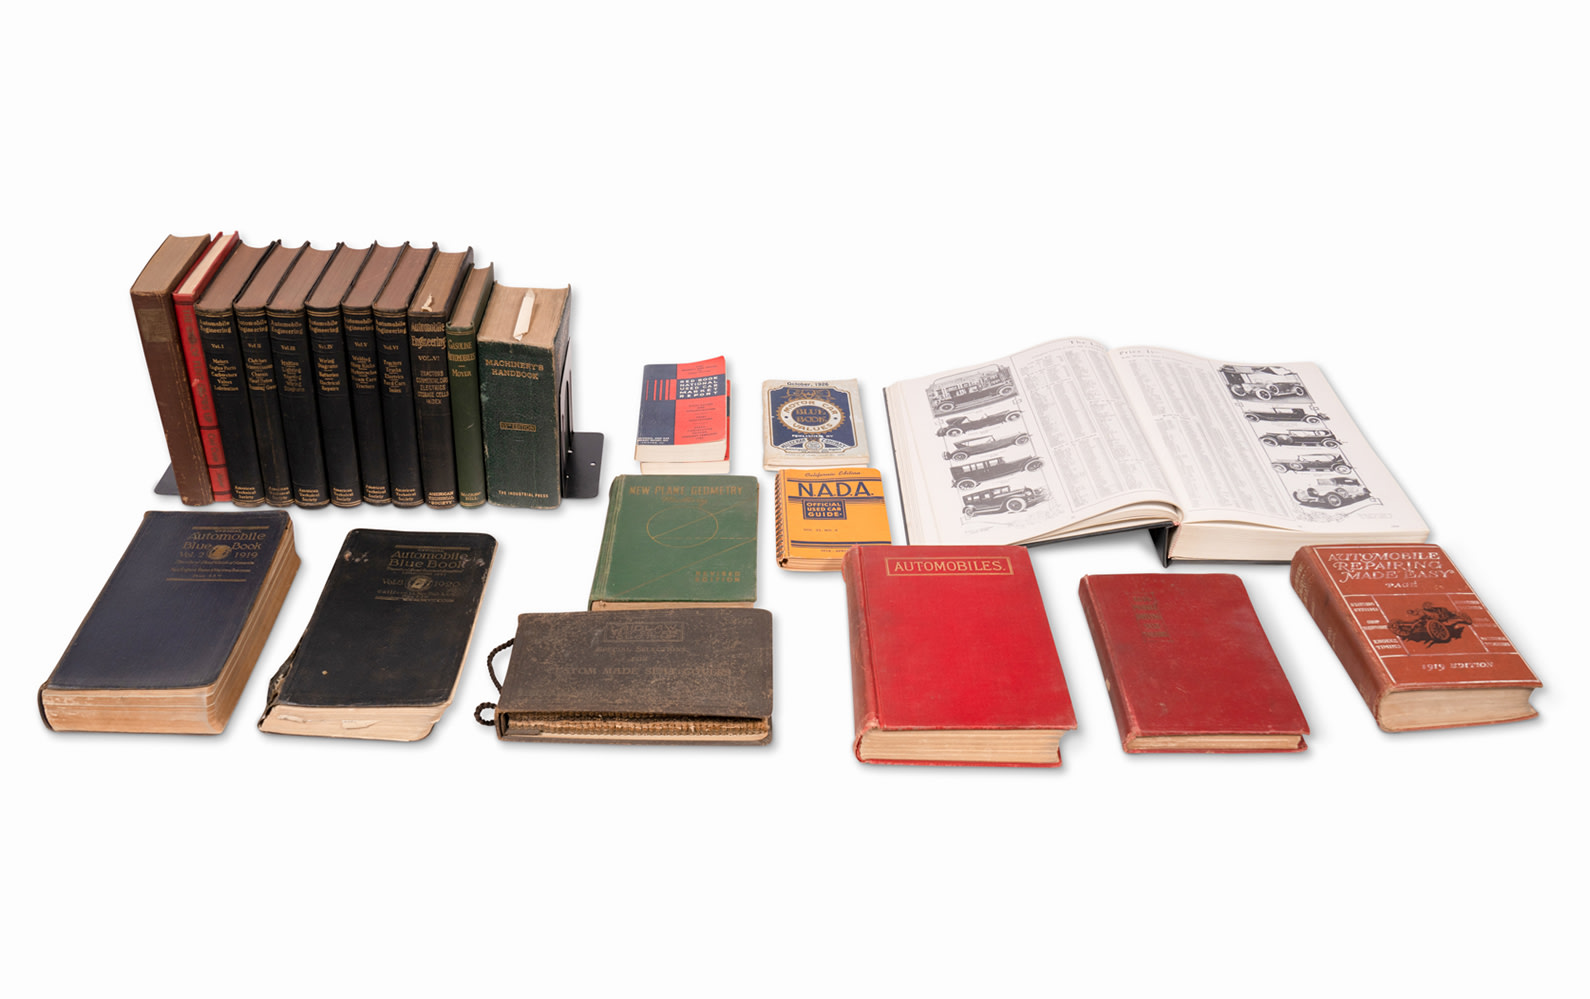 Assorted Automobile Engineering Books and Technical Literature